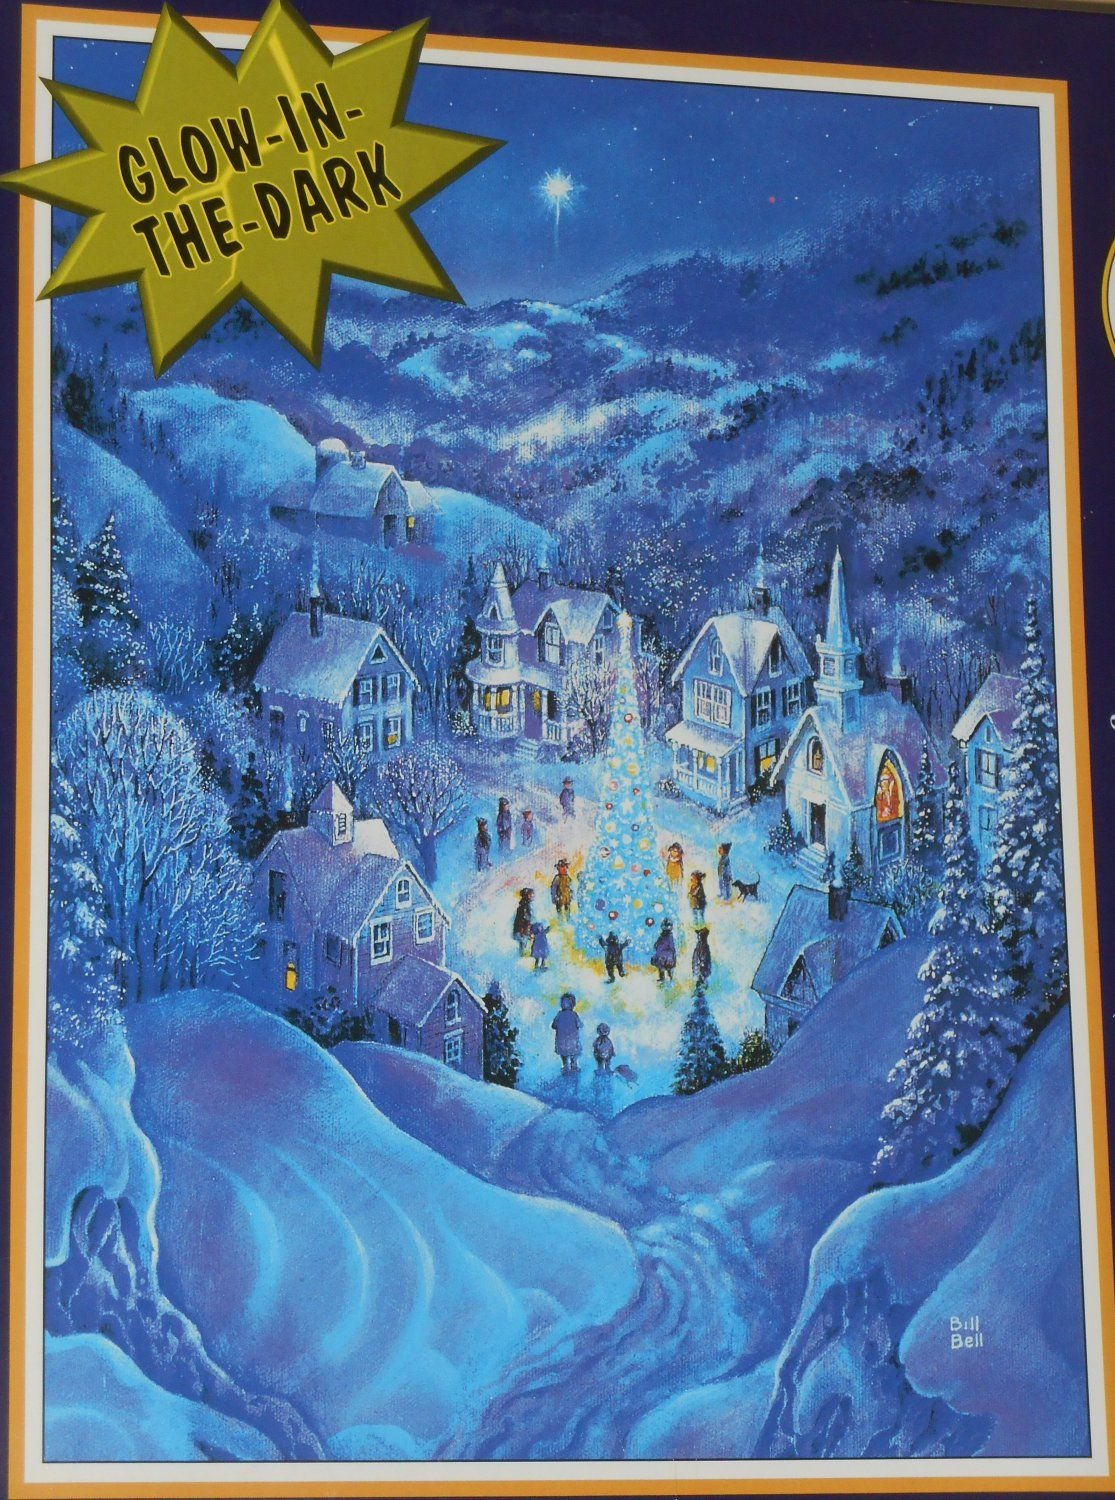 The Road To Christmas 2020 Road+To+Christmas+1000+Piece+Jigsaw+Puzzle+Glow in the Dark+11